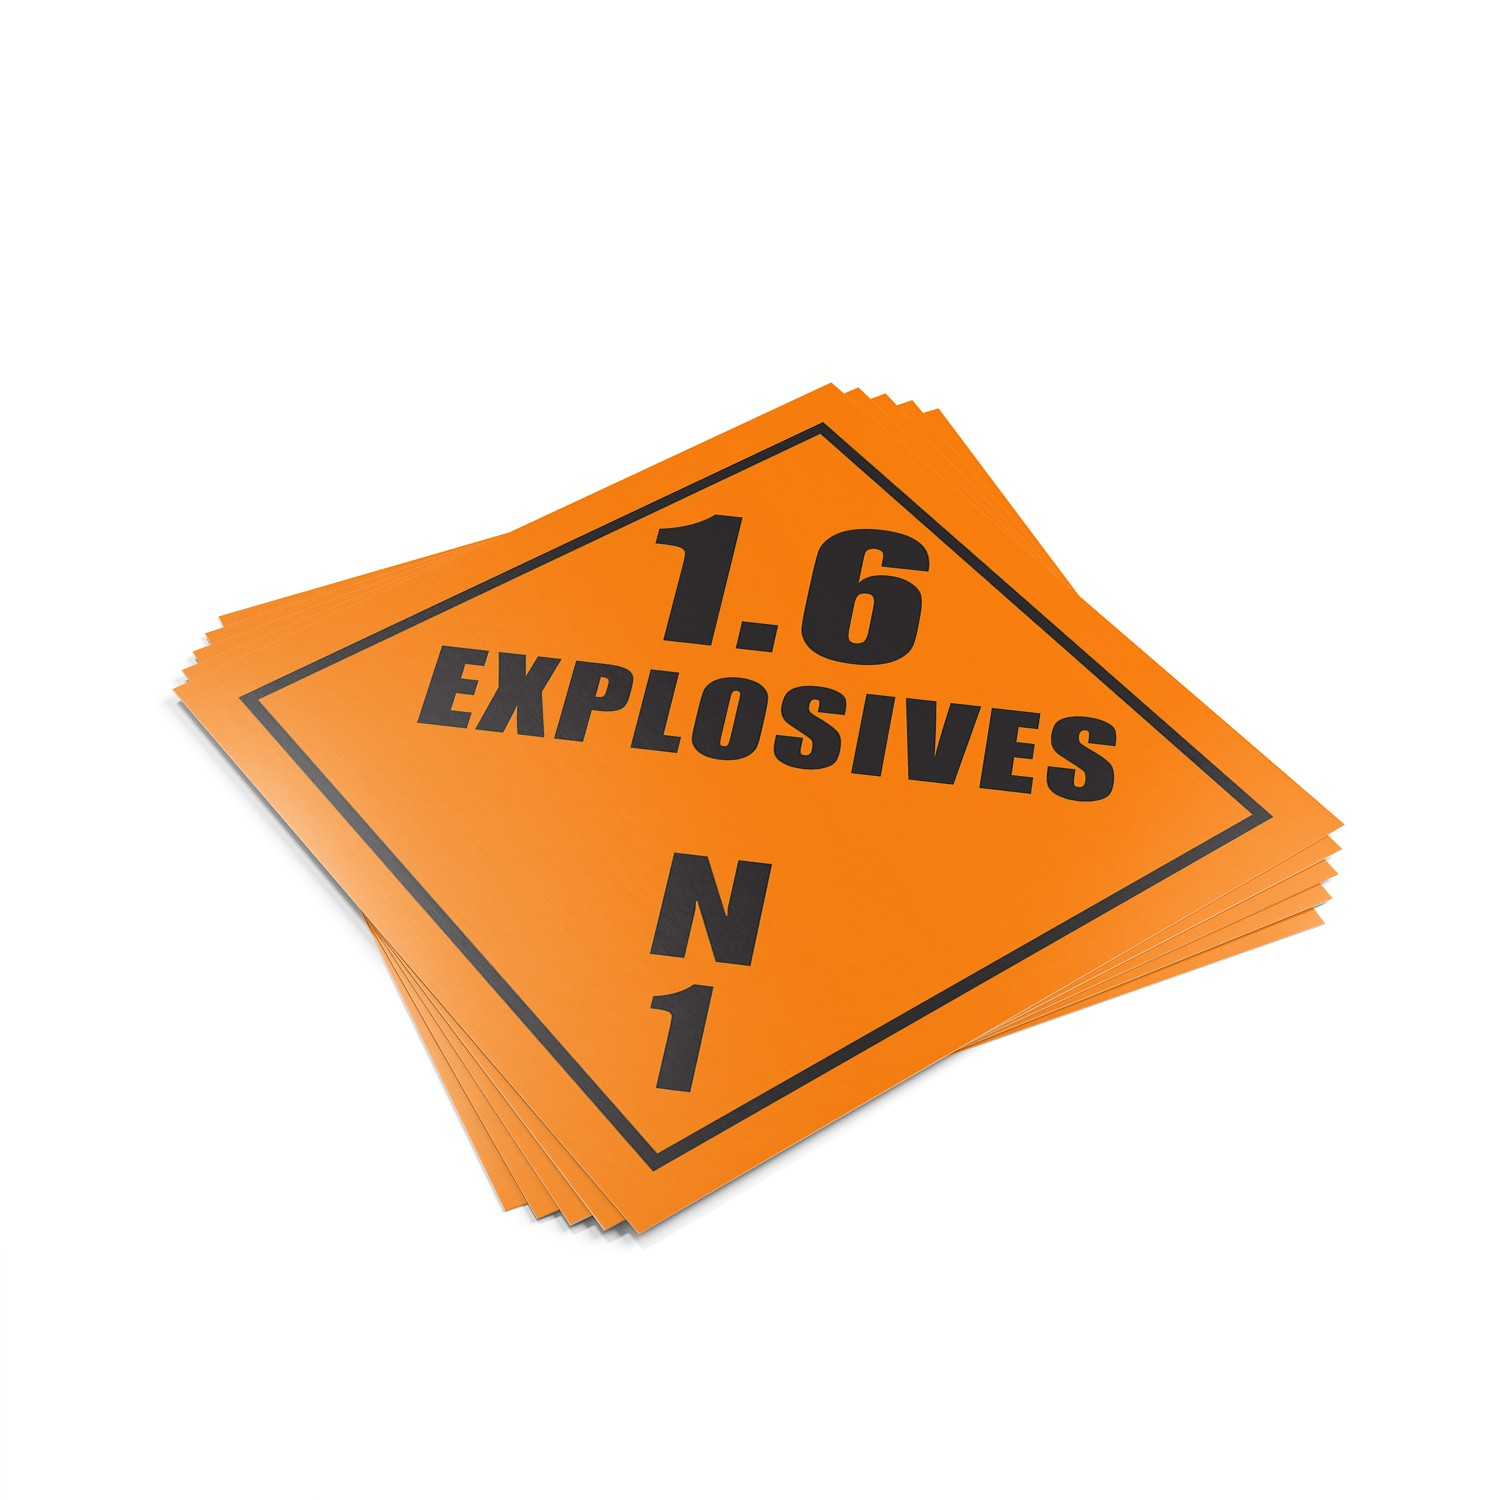 "TOTALPACK® 10 3/4 x 10 3/4"" - Placard ""Explosives 1.6 N 1"" 25 Units"